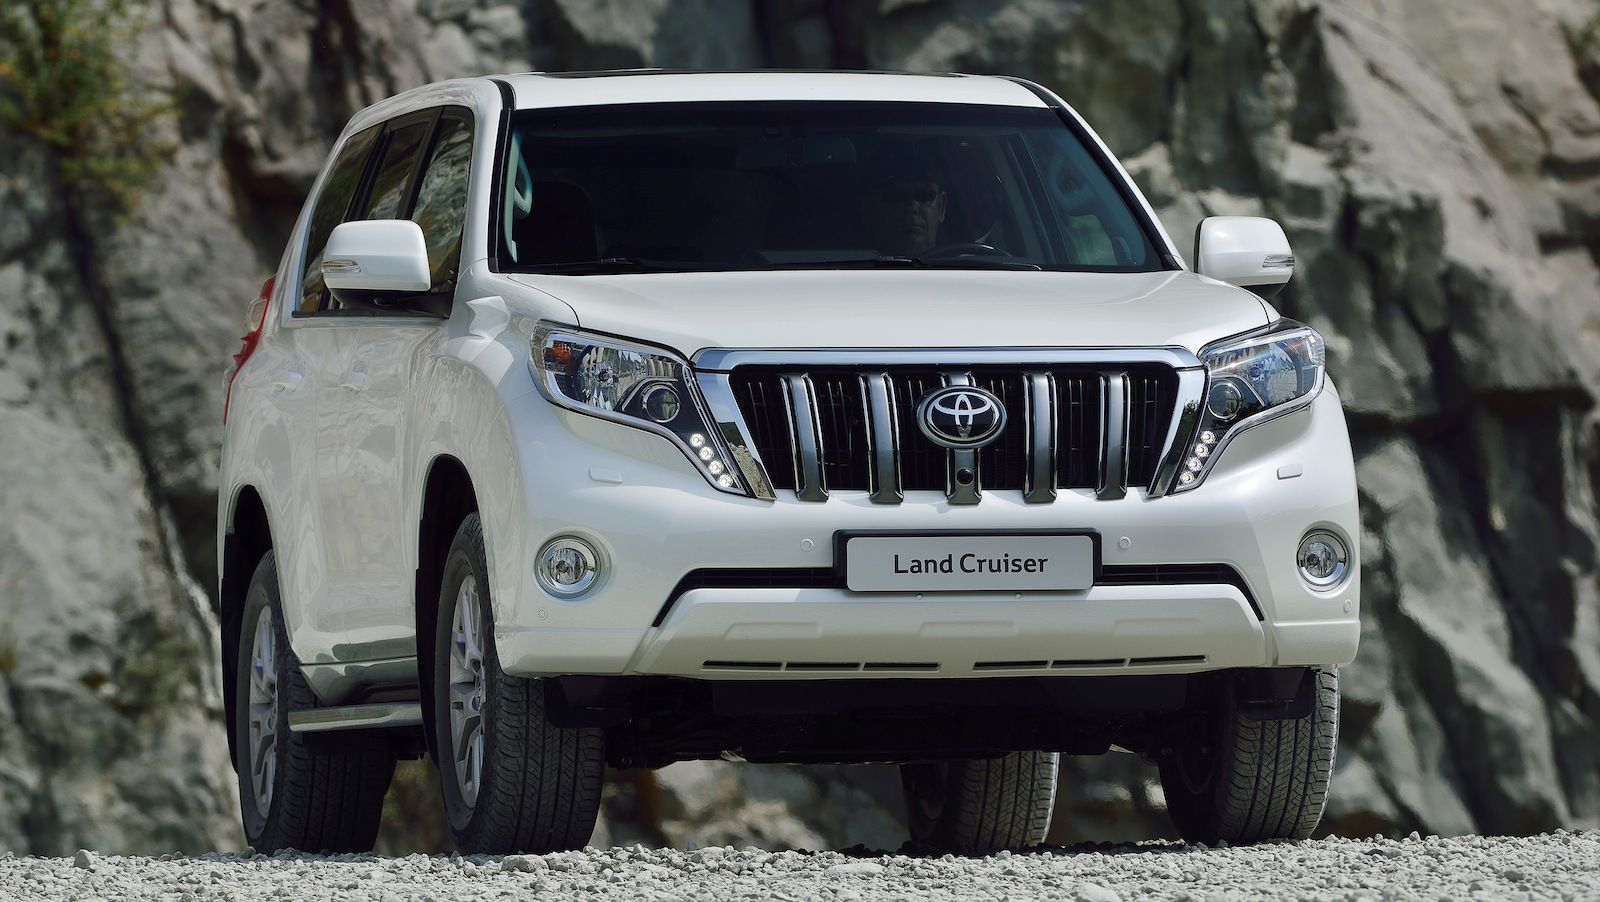 2017 Toyota Land Cruiser Prado Facelift Land Cruiser